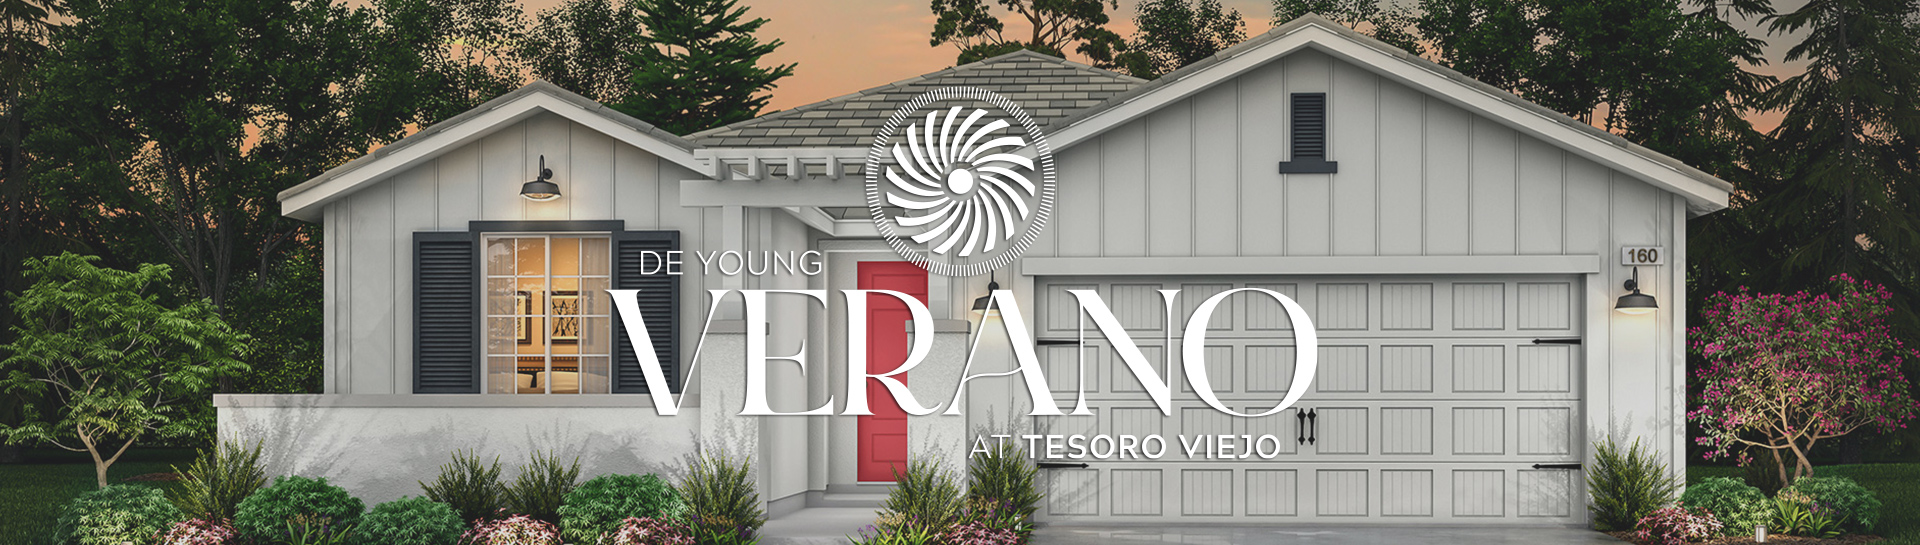 Join Us Saturday, October 9, For A De Young Verano Pre-Grand Opening!